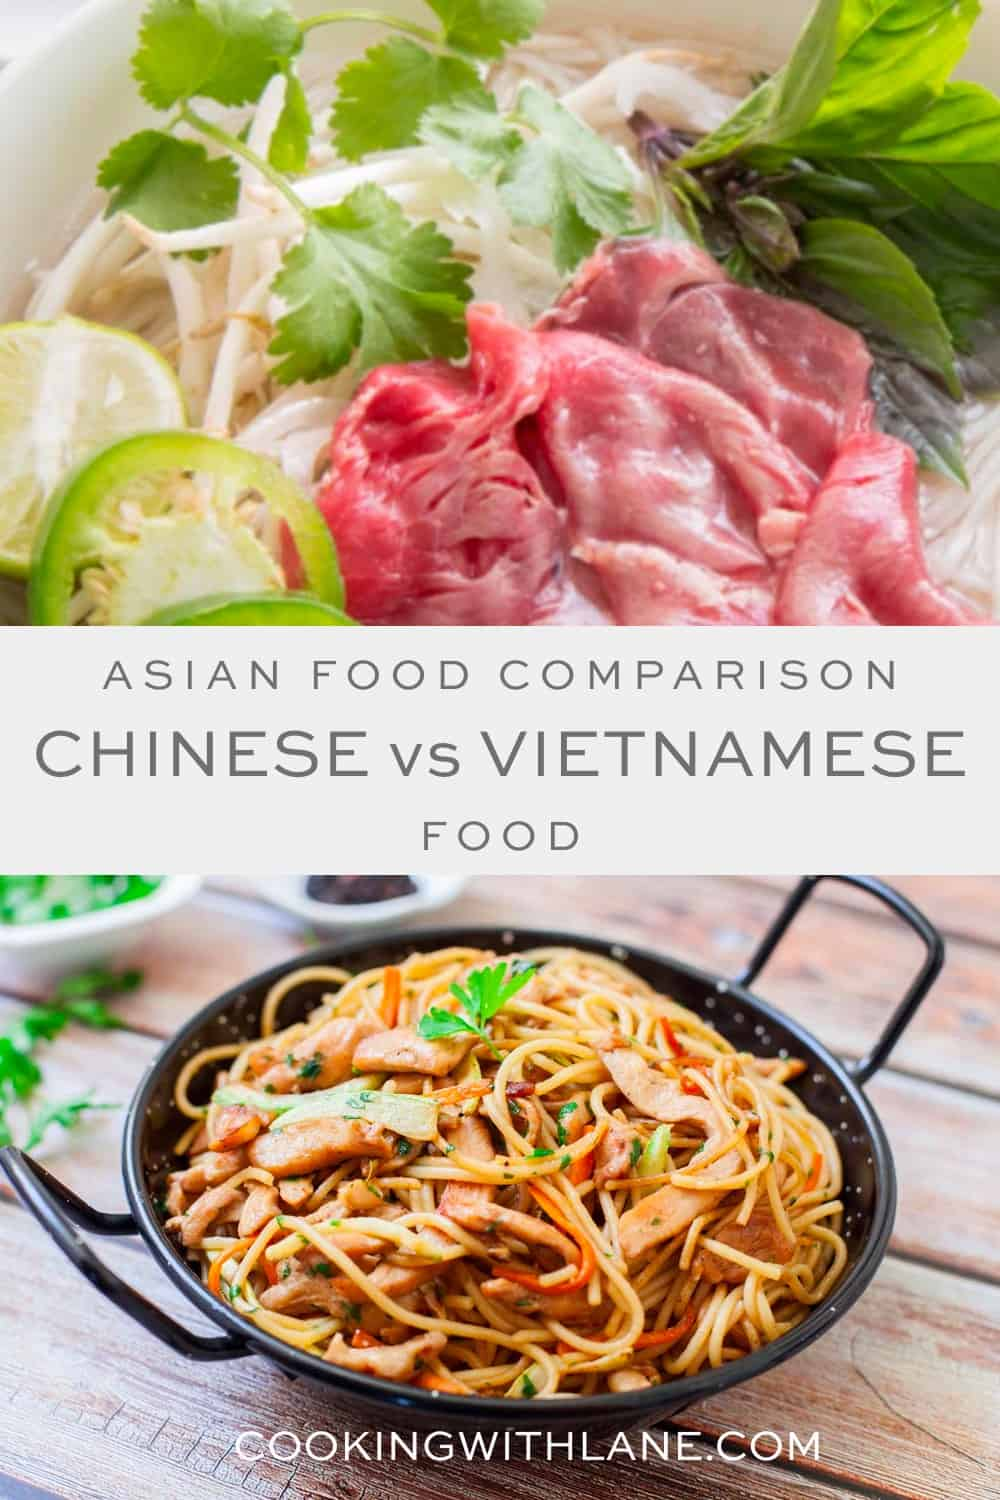 Learn differences between Chinese and Vietnamese food